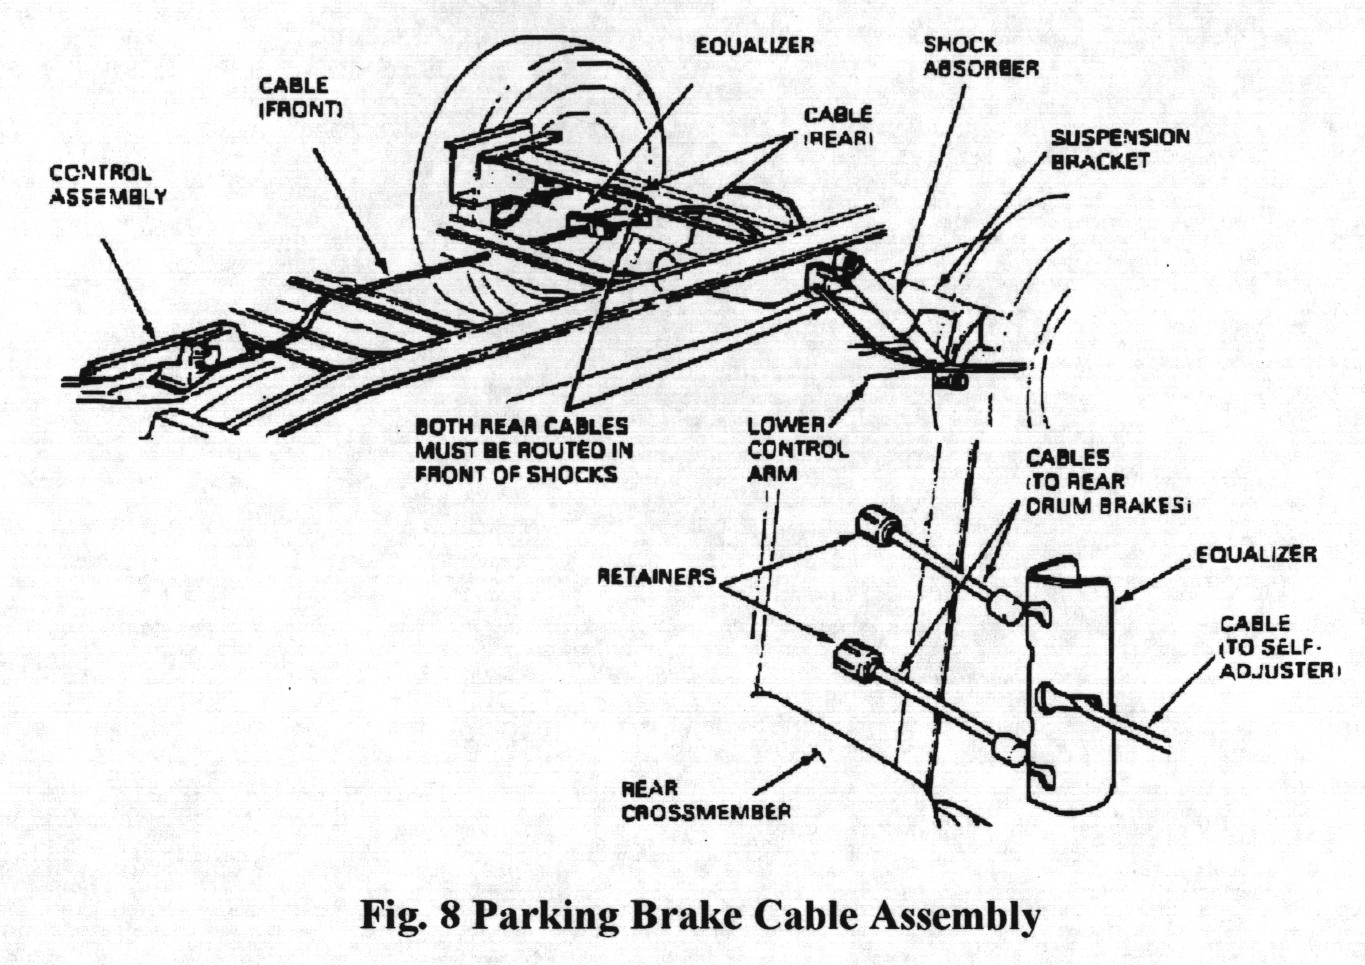 OO846 DIAGRAM 93 Ford Ranger Rear Brakes Diagram OO846